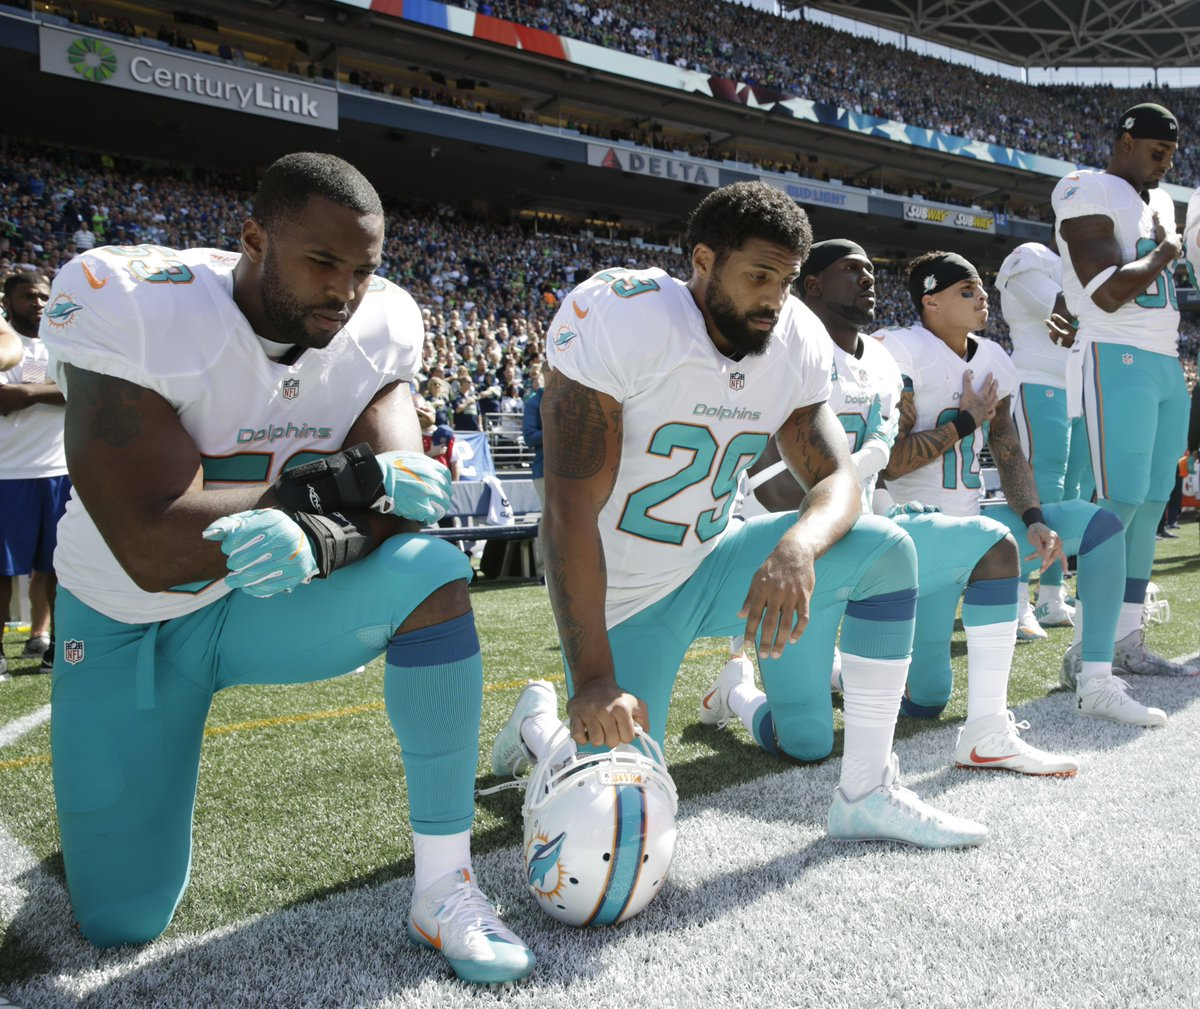 The Miami Dolphins say they will fine and/or suspend players who protest during the national anthem.